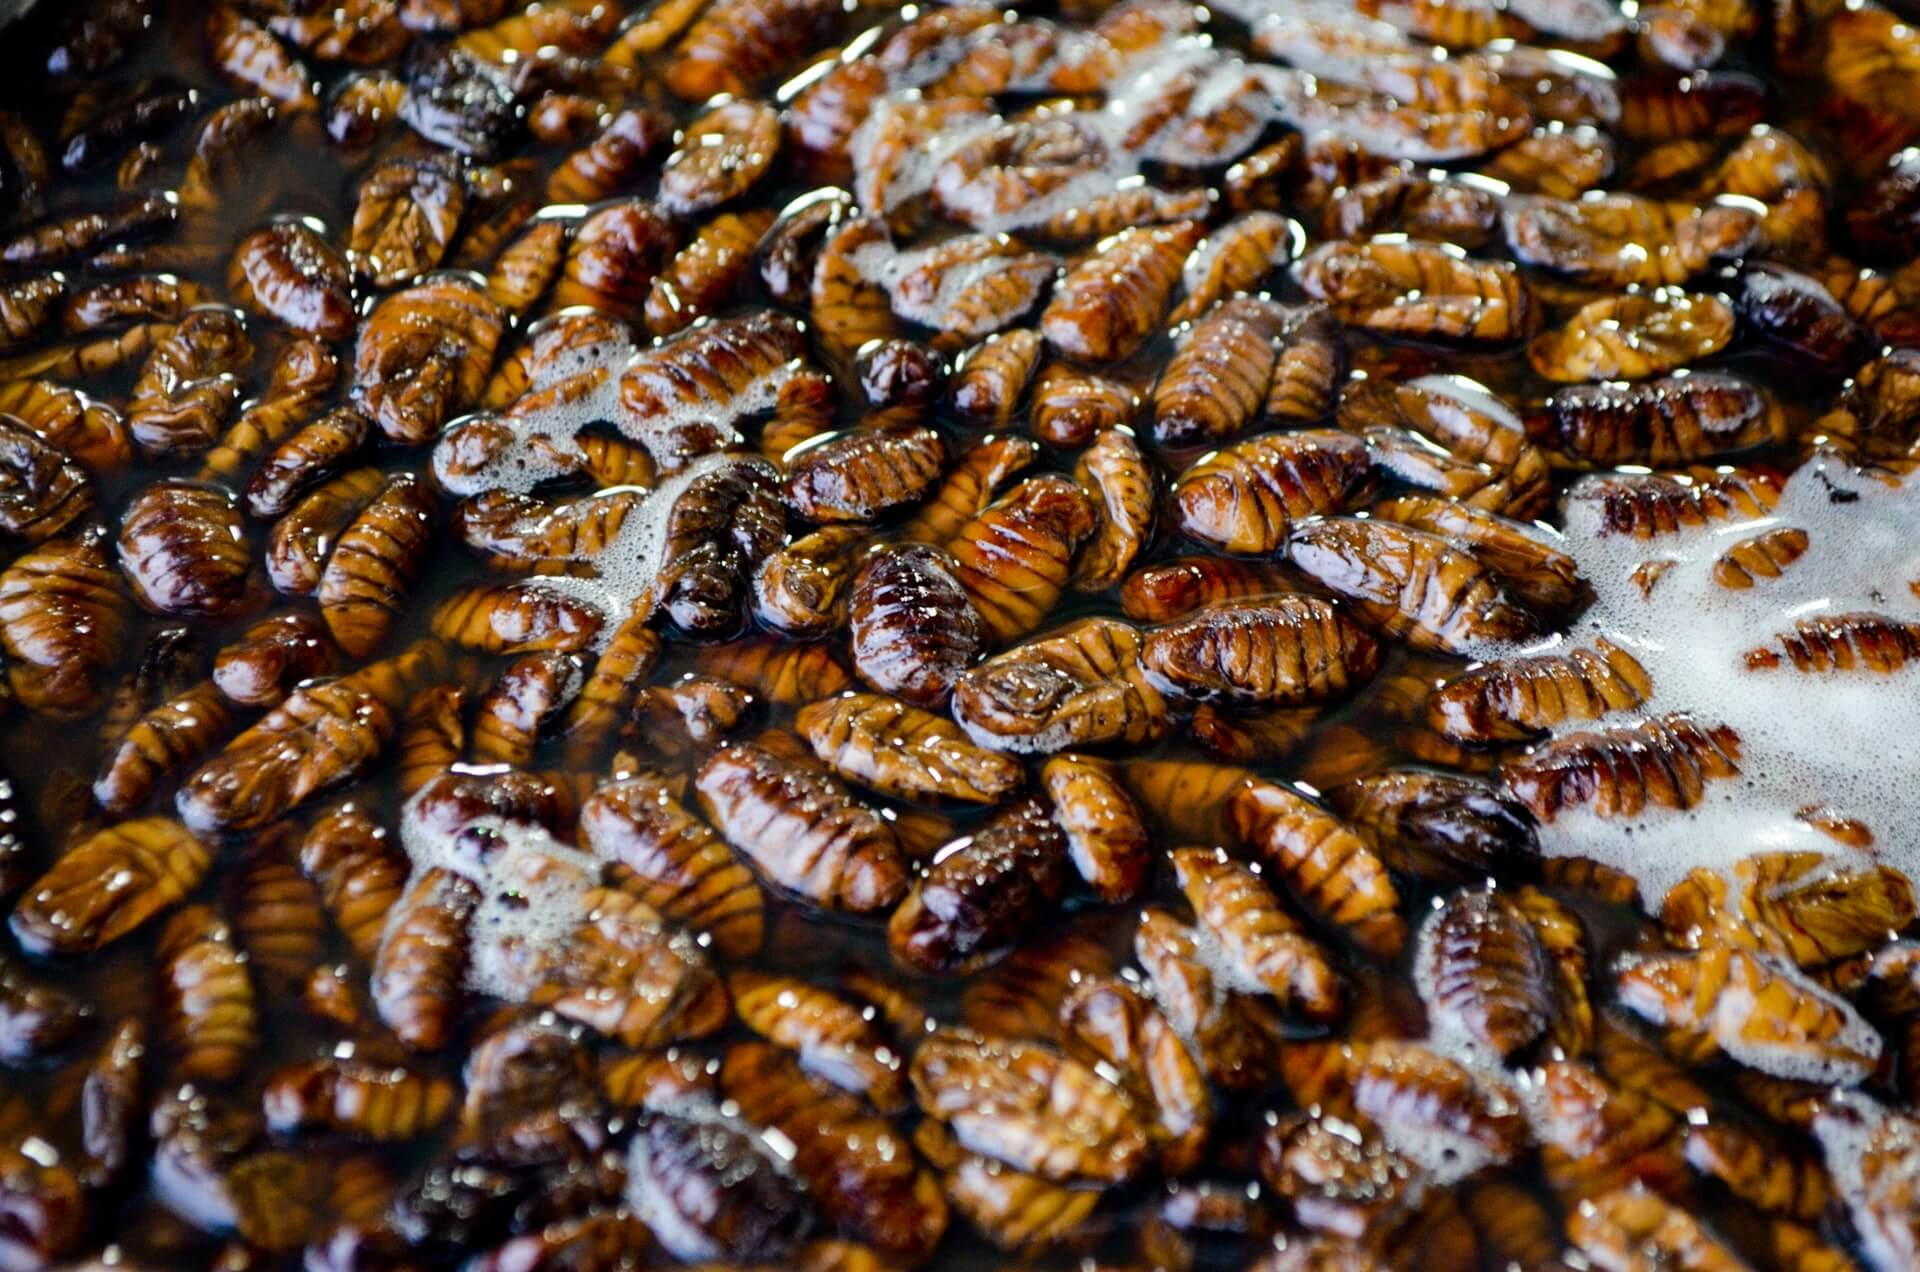 When to call a pest controller for roaches